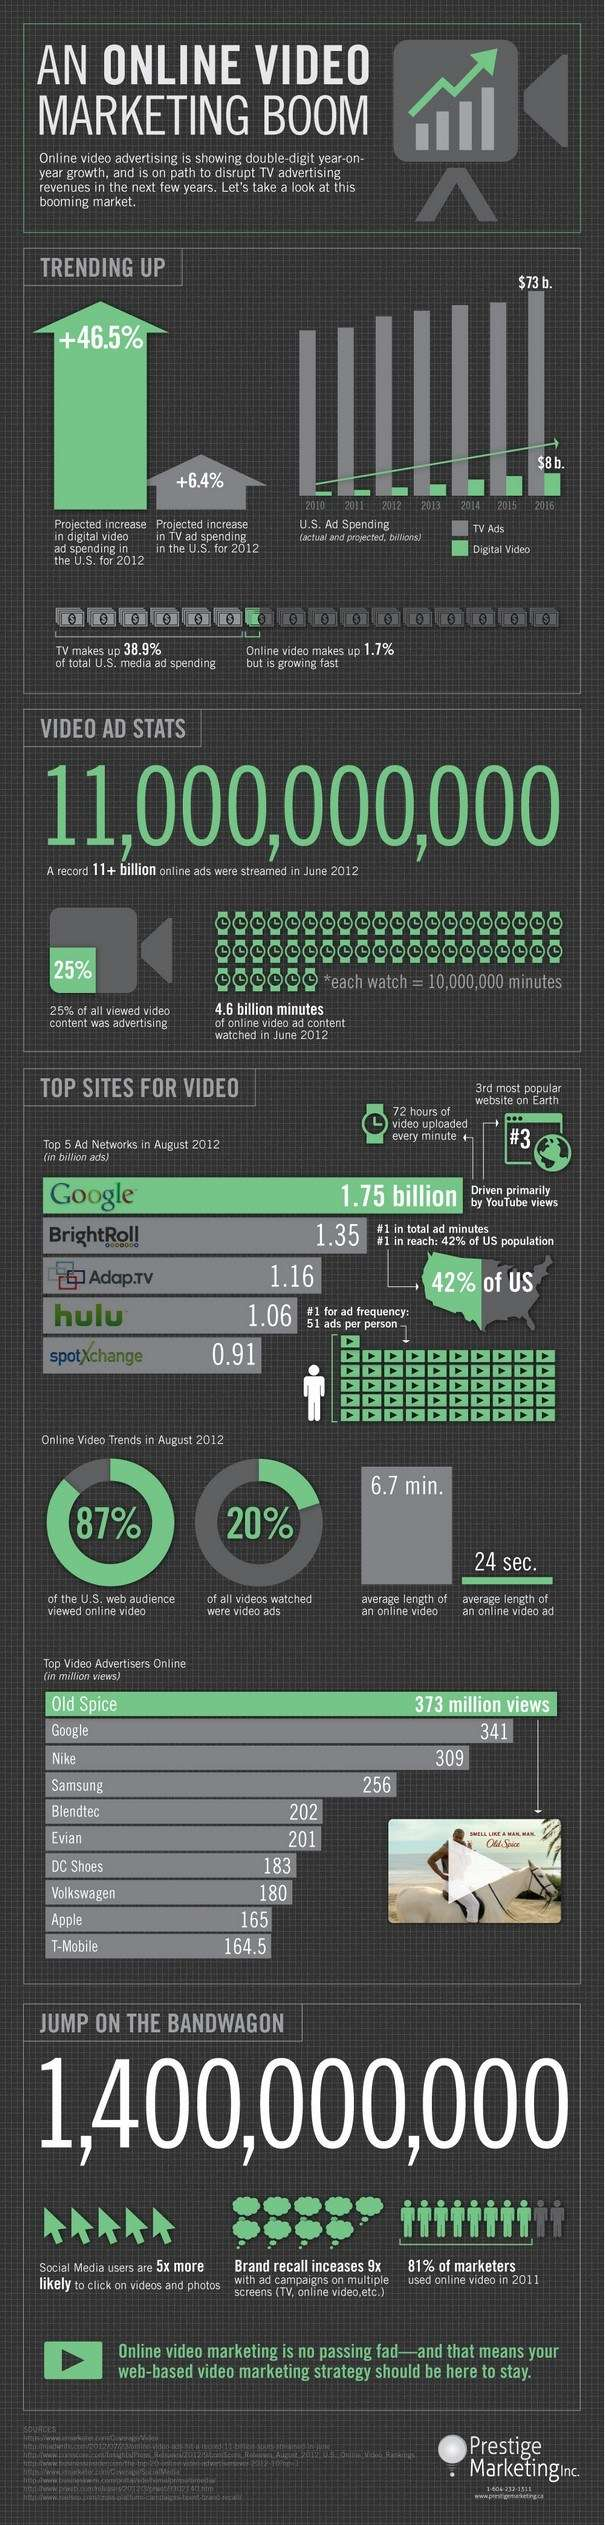 An Online Video Marketing Boom Infographic